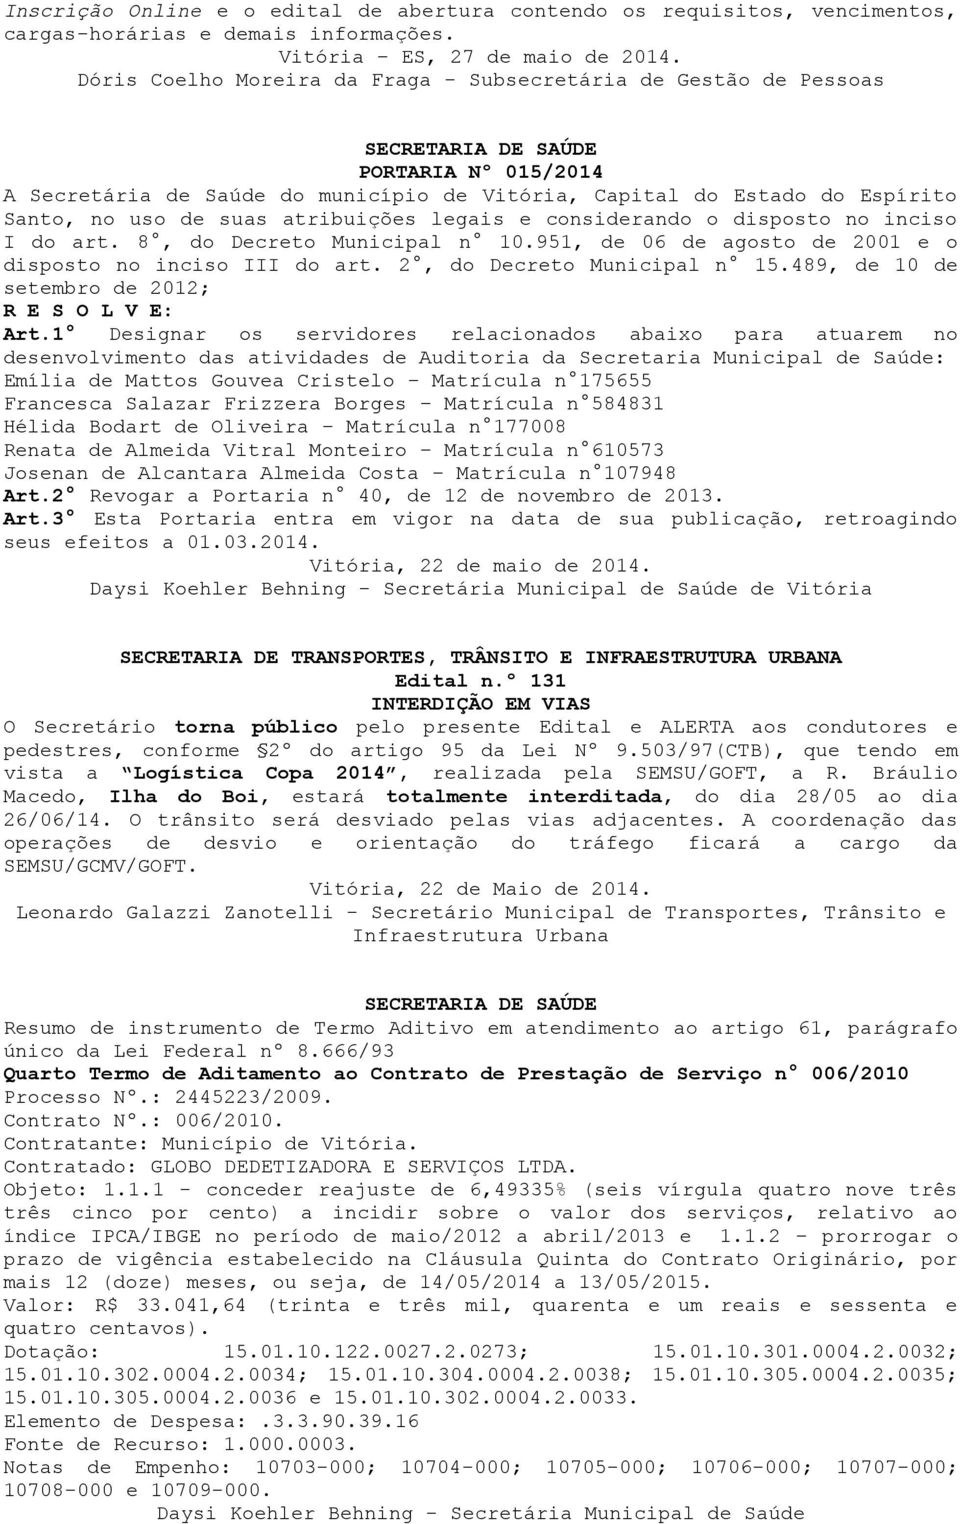 de suas atribuições legais e considerando o disposto no inciso I do art. 8, do Decreto Municipal n 10.951, de 06 de agosto de 2001 e o disposto no inciso III do art. 2, do Decreto Municipal n 15.